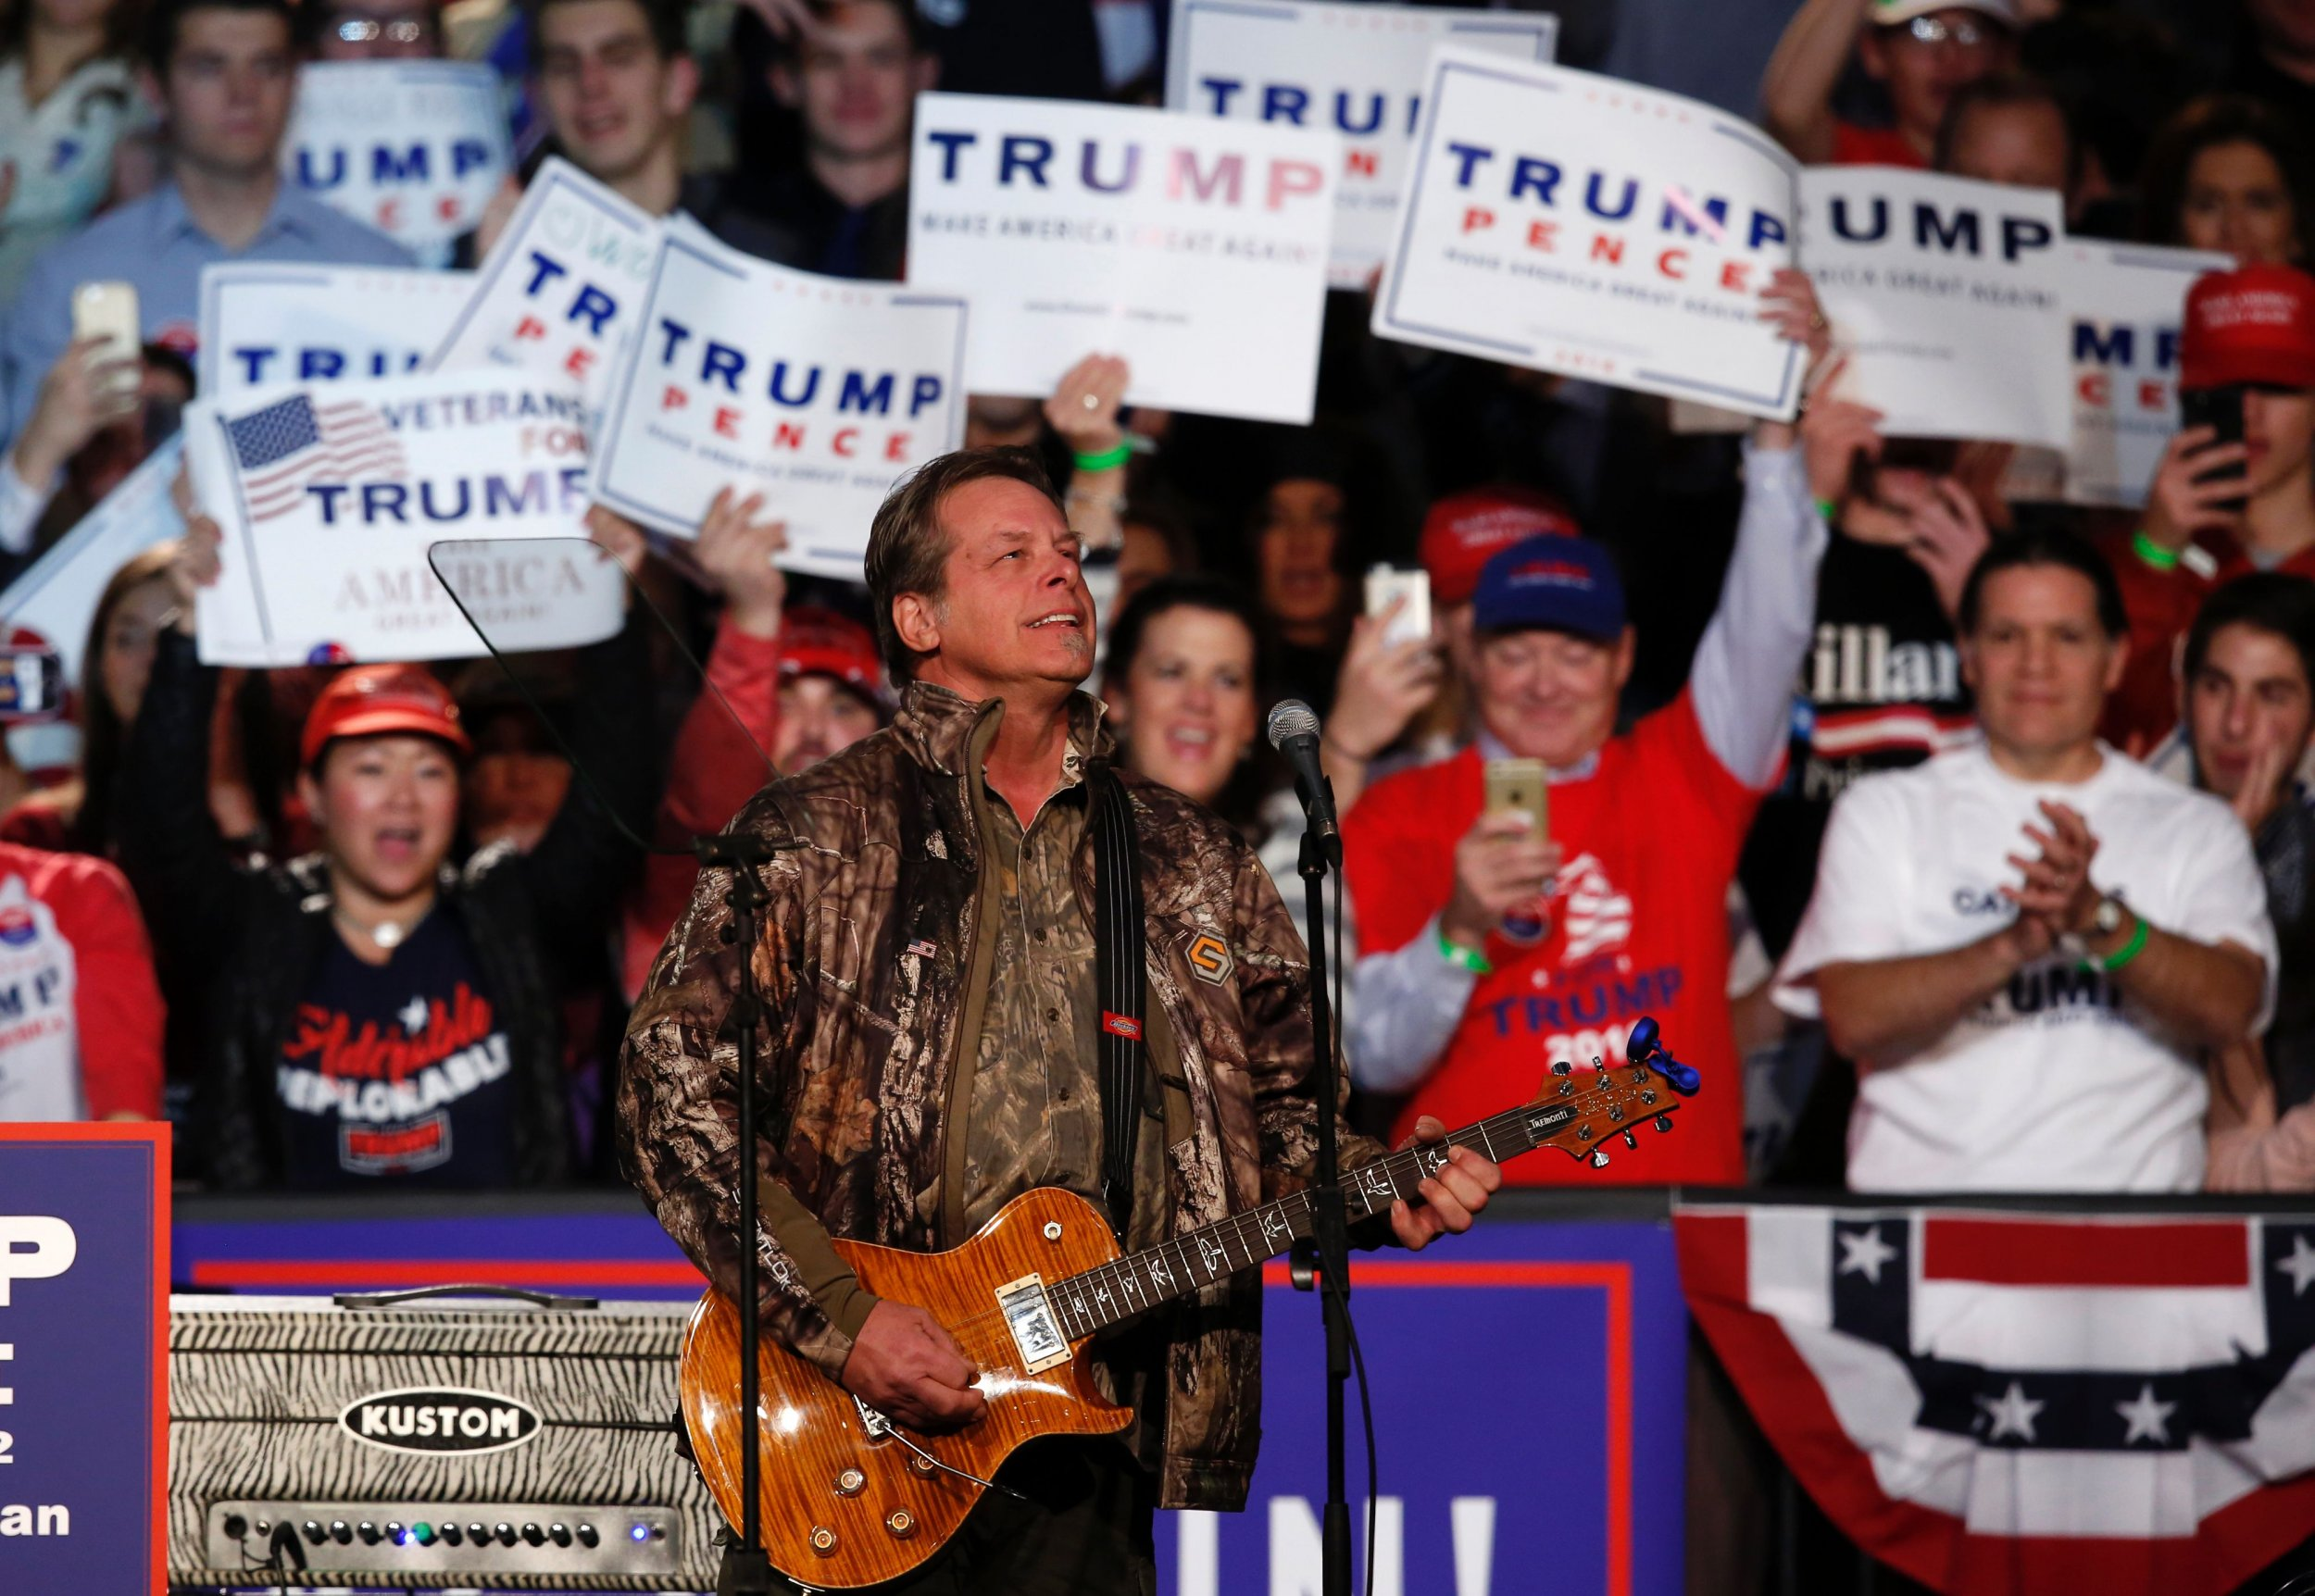 849bfd1d2 Michigan Turned into 'California Shithole,' Ted Nugent Says After ...